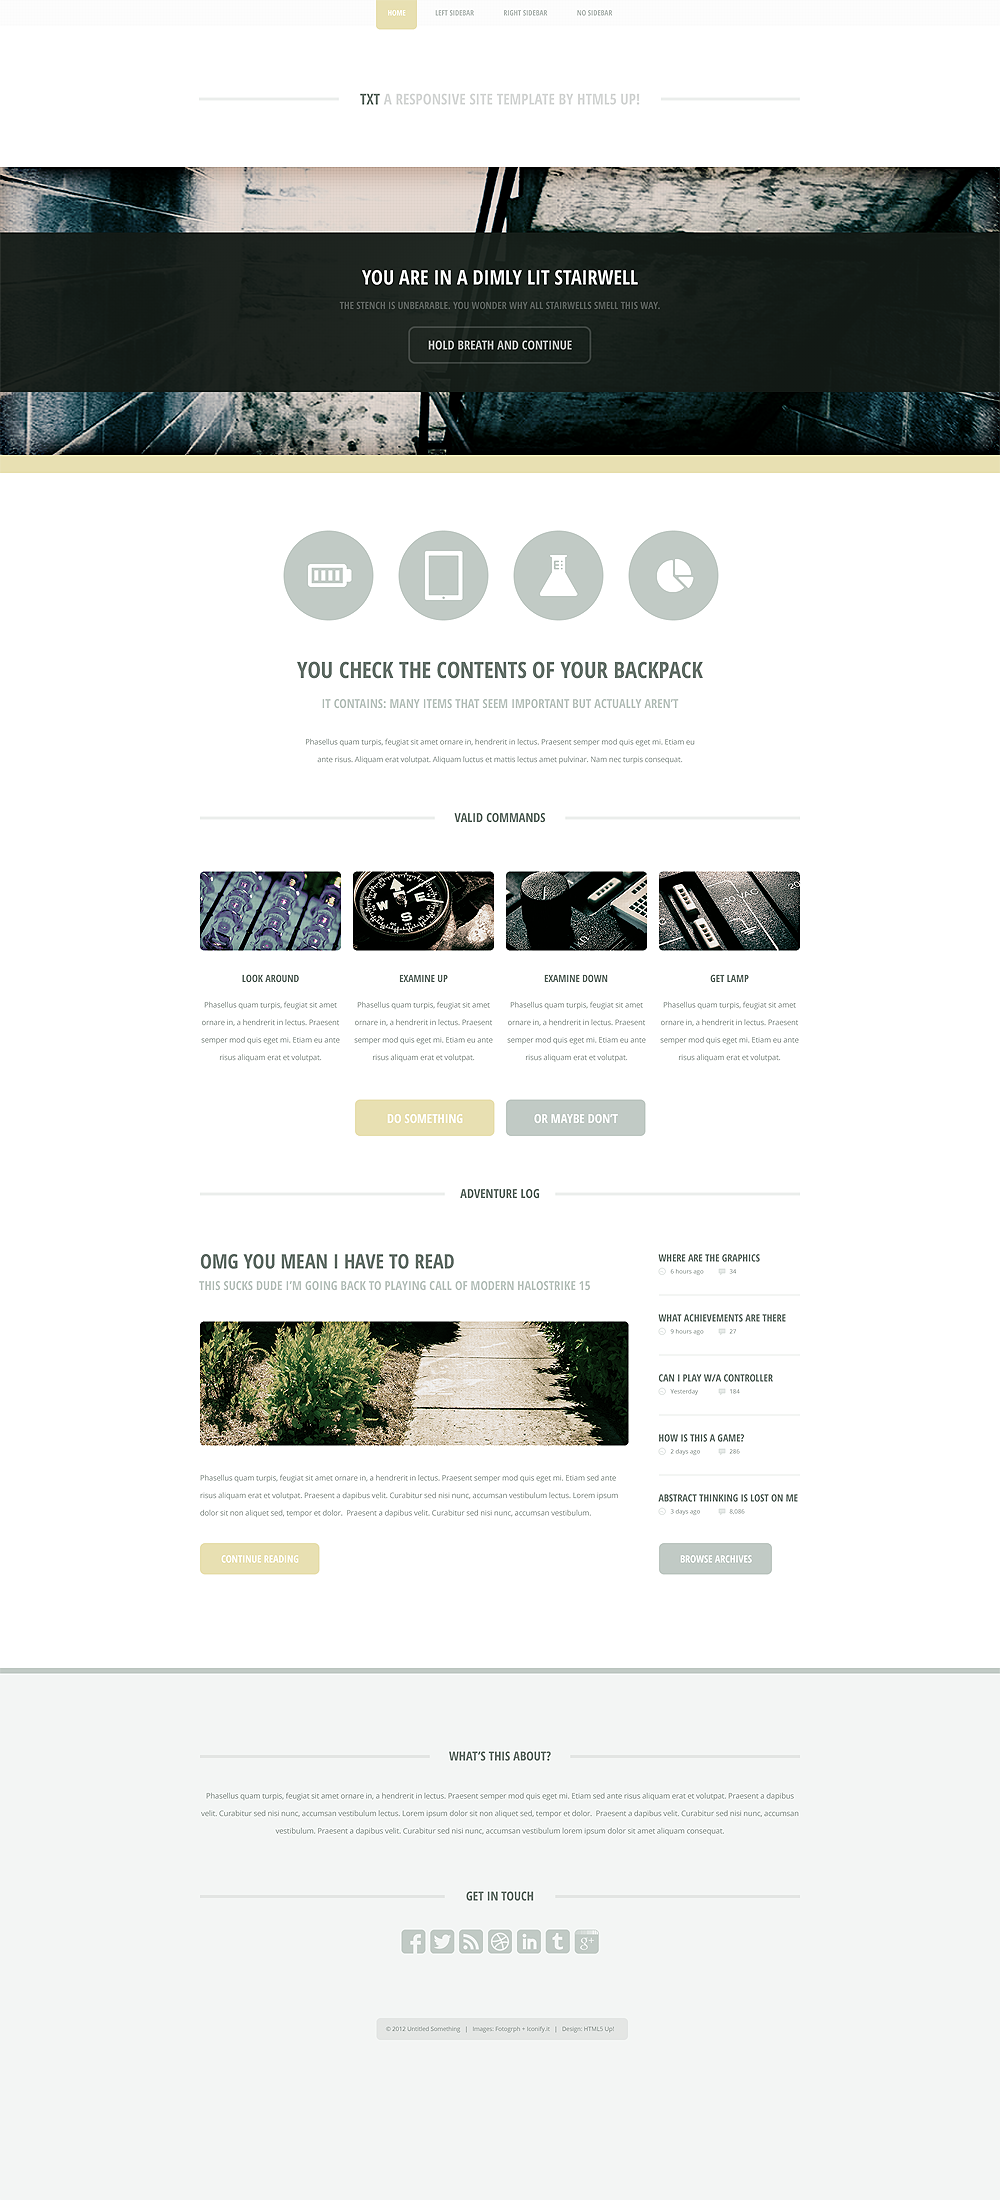 TXT, a responsive site template/theme by nodethirtythree